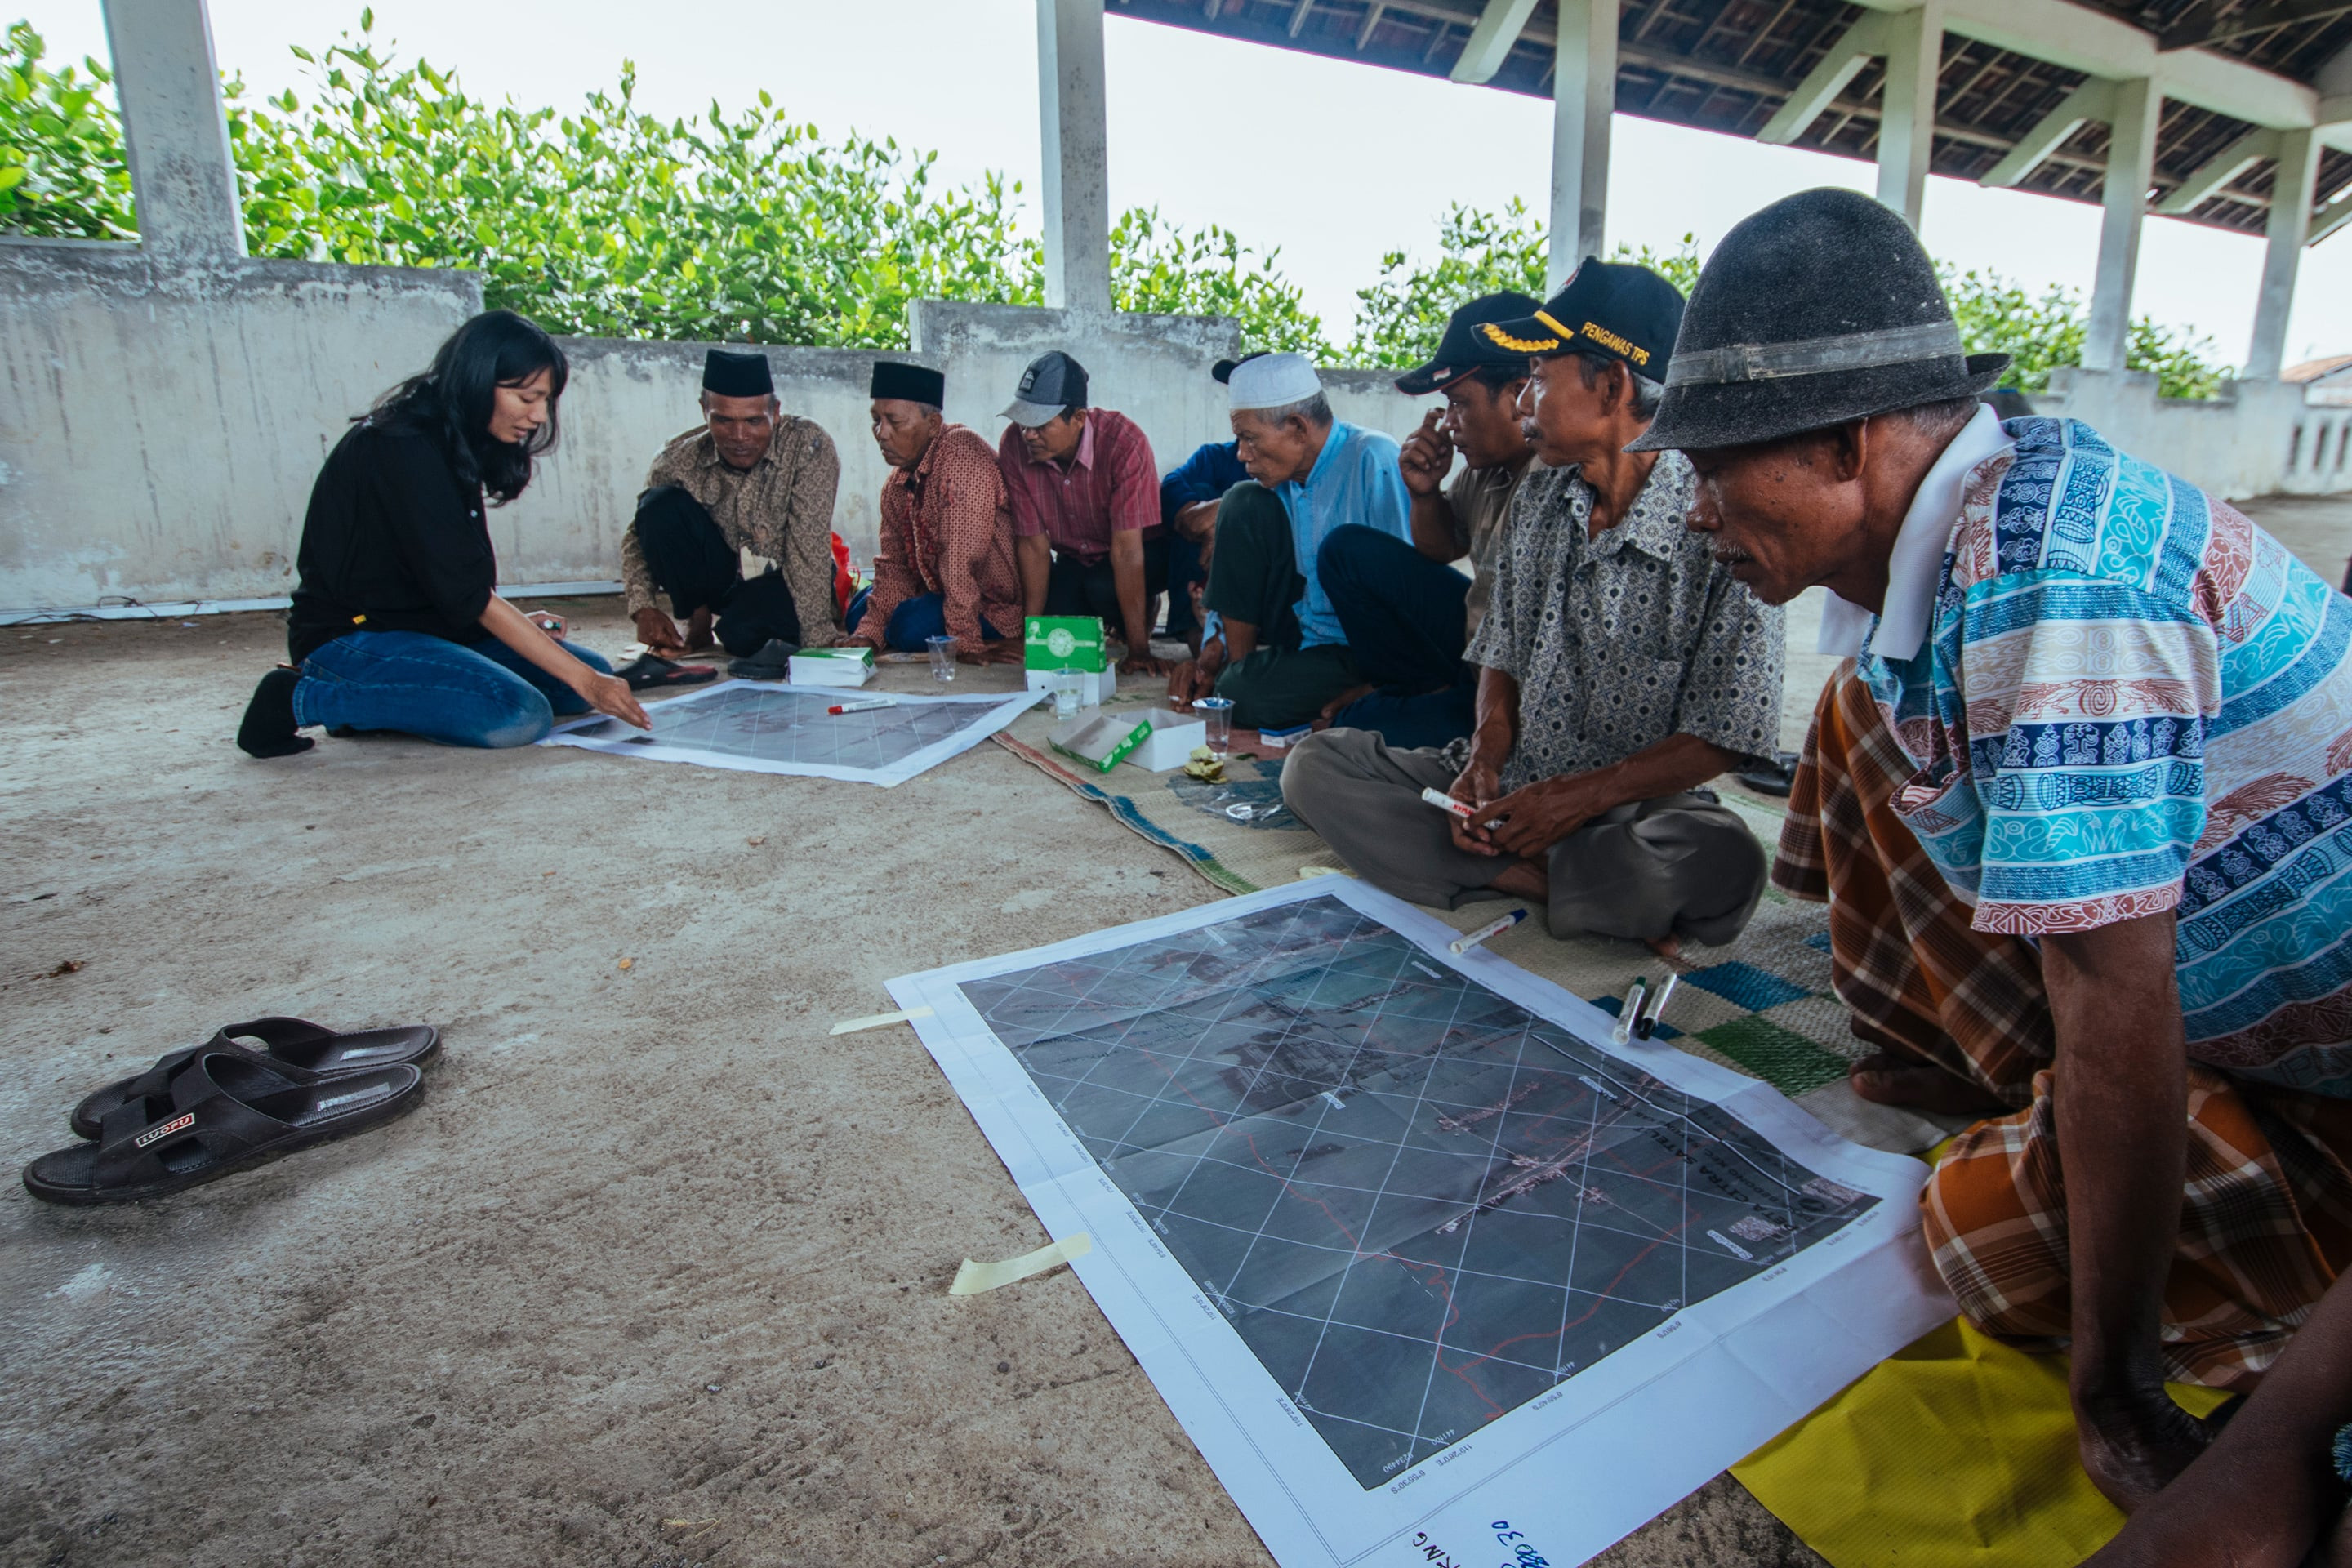 Coastal Field School to train the villagers in critical thinking skills to develop aquaculture practices